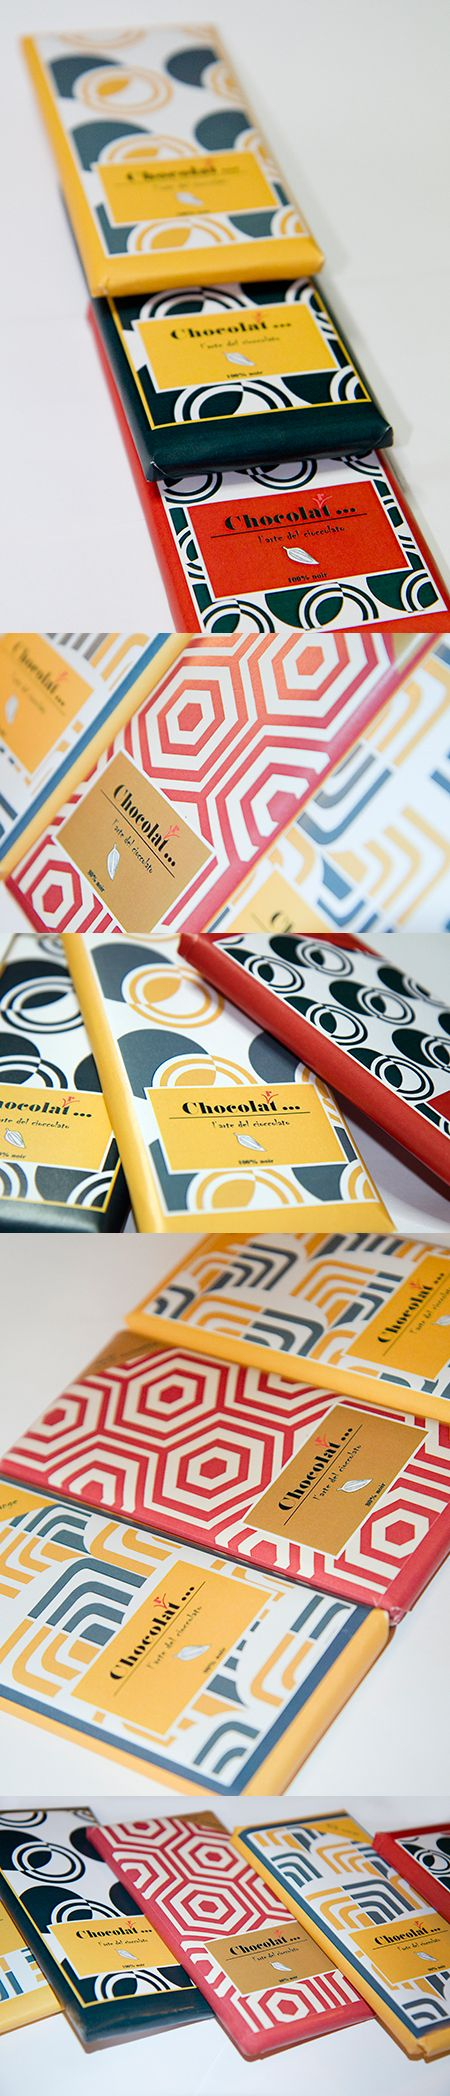 © Olga Ricciardi #Chocolate #packaging inspiration PD